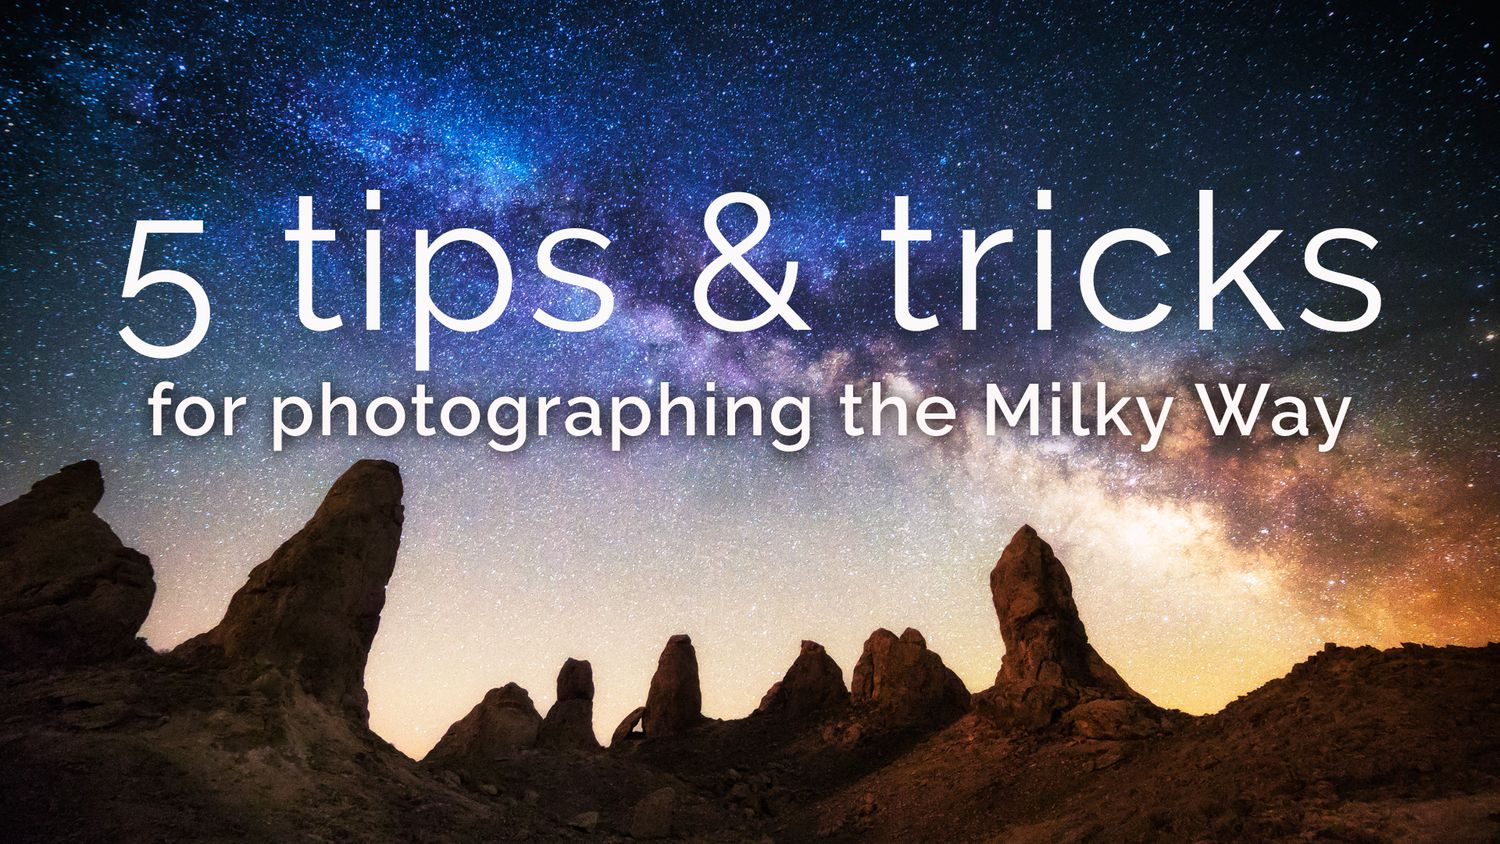 5 photography tips for shooting the Milky Way | All things Photo